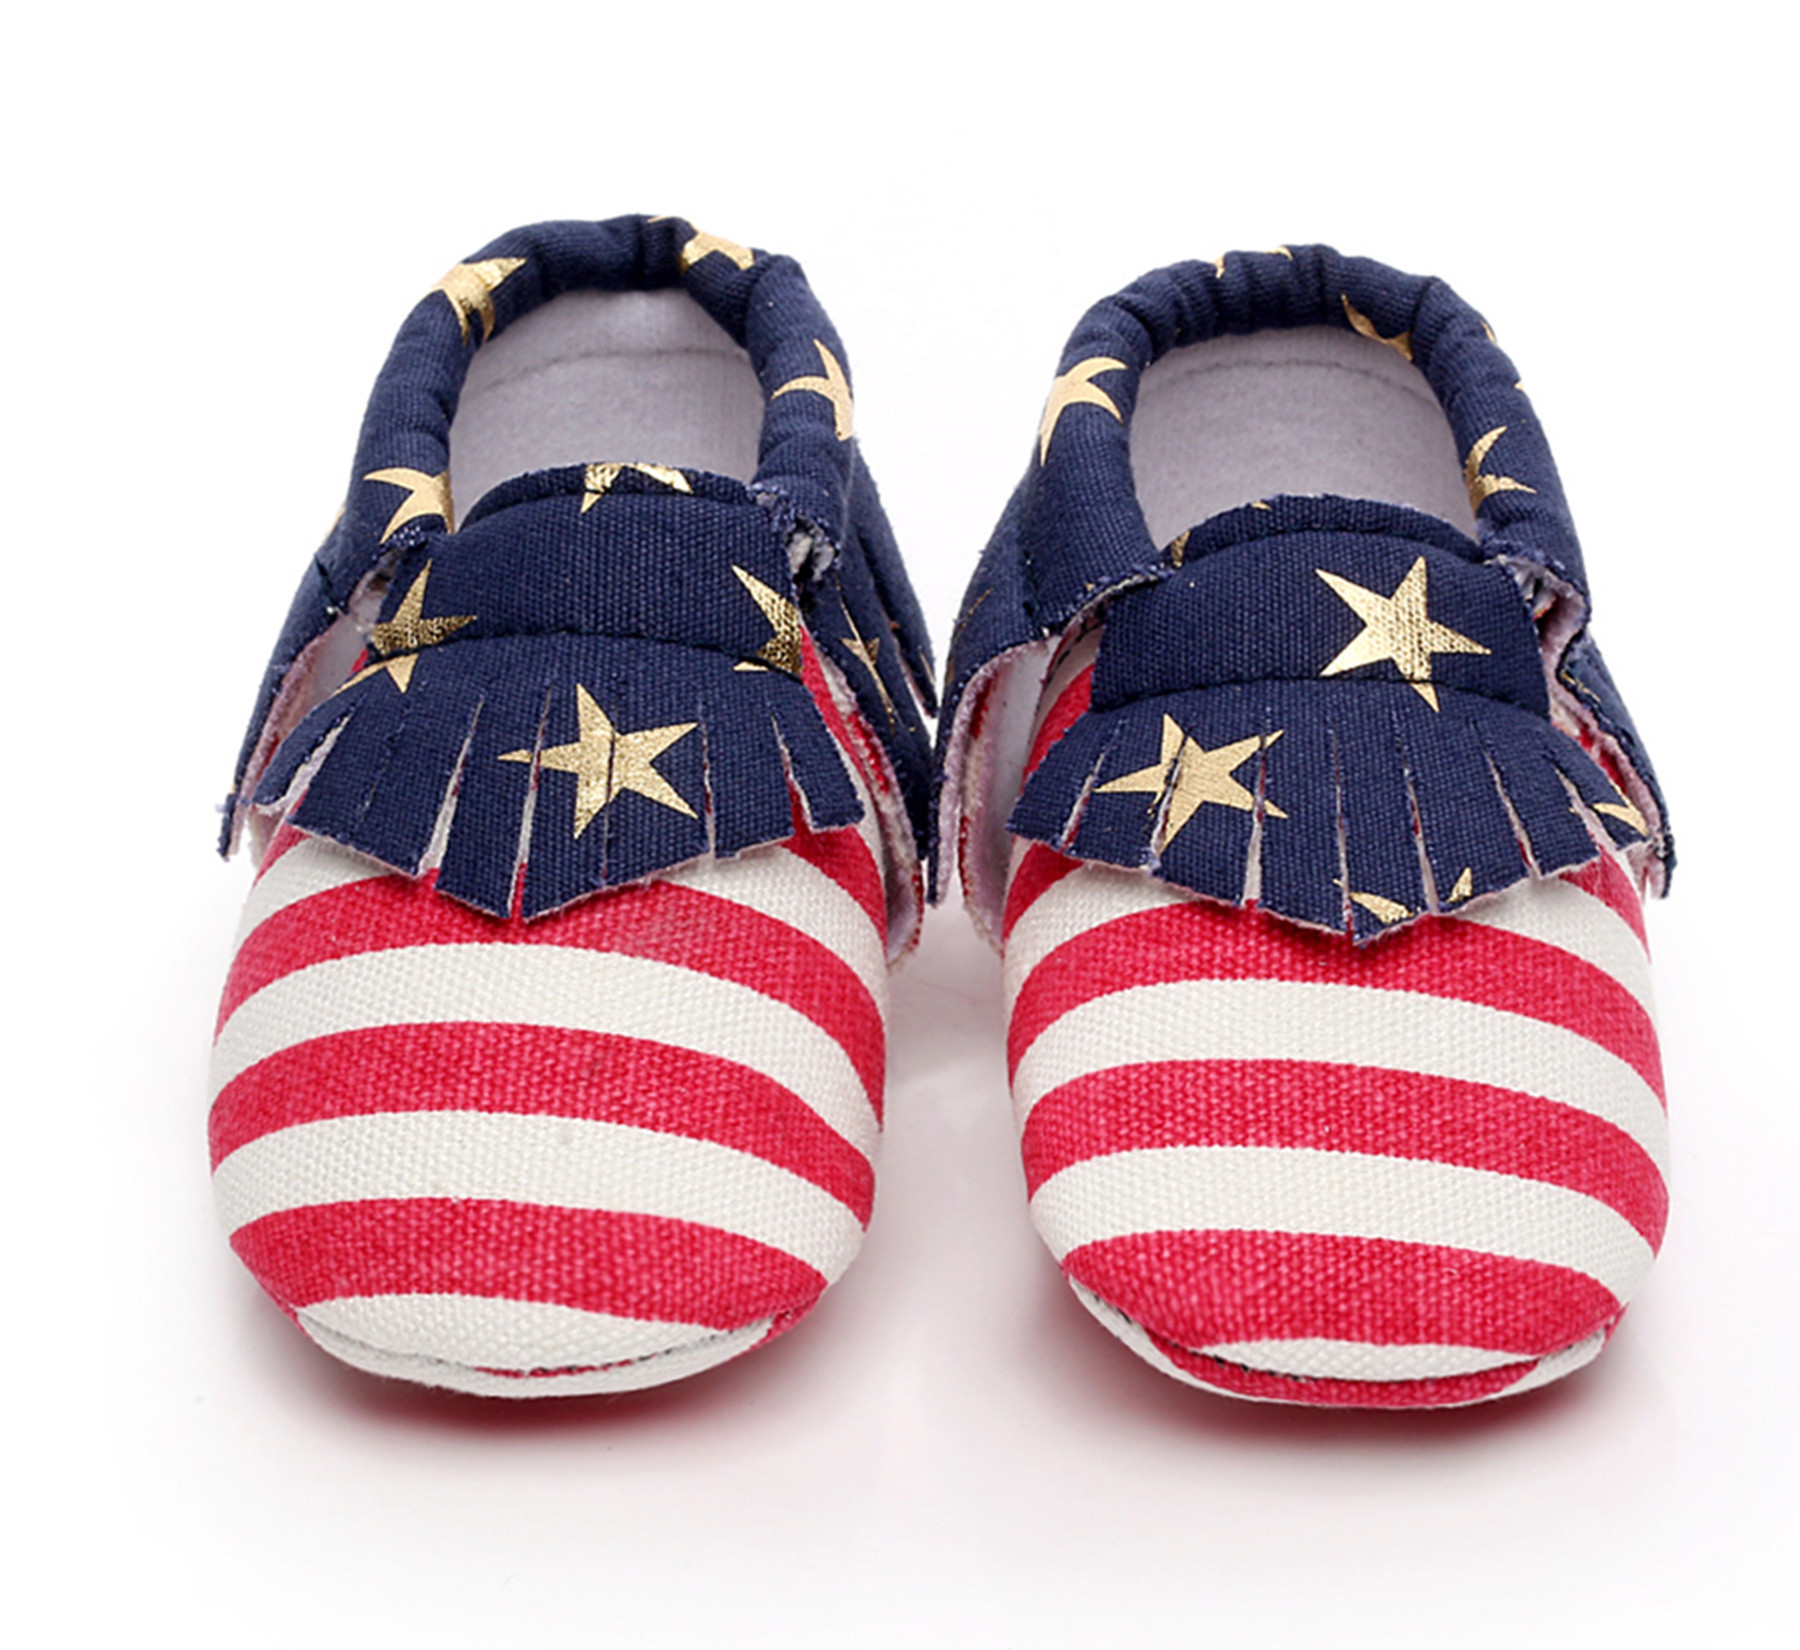 2019 Hot Fashion Unique Tassel Toddler Shoes American Flag Baby Soft Sole Shoes Baby Moccasins